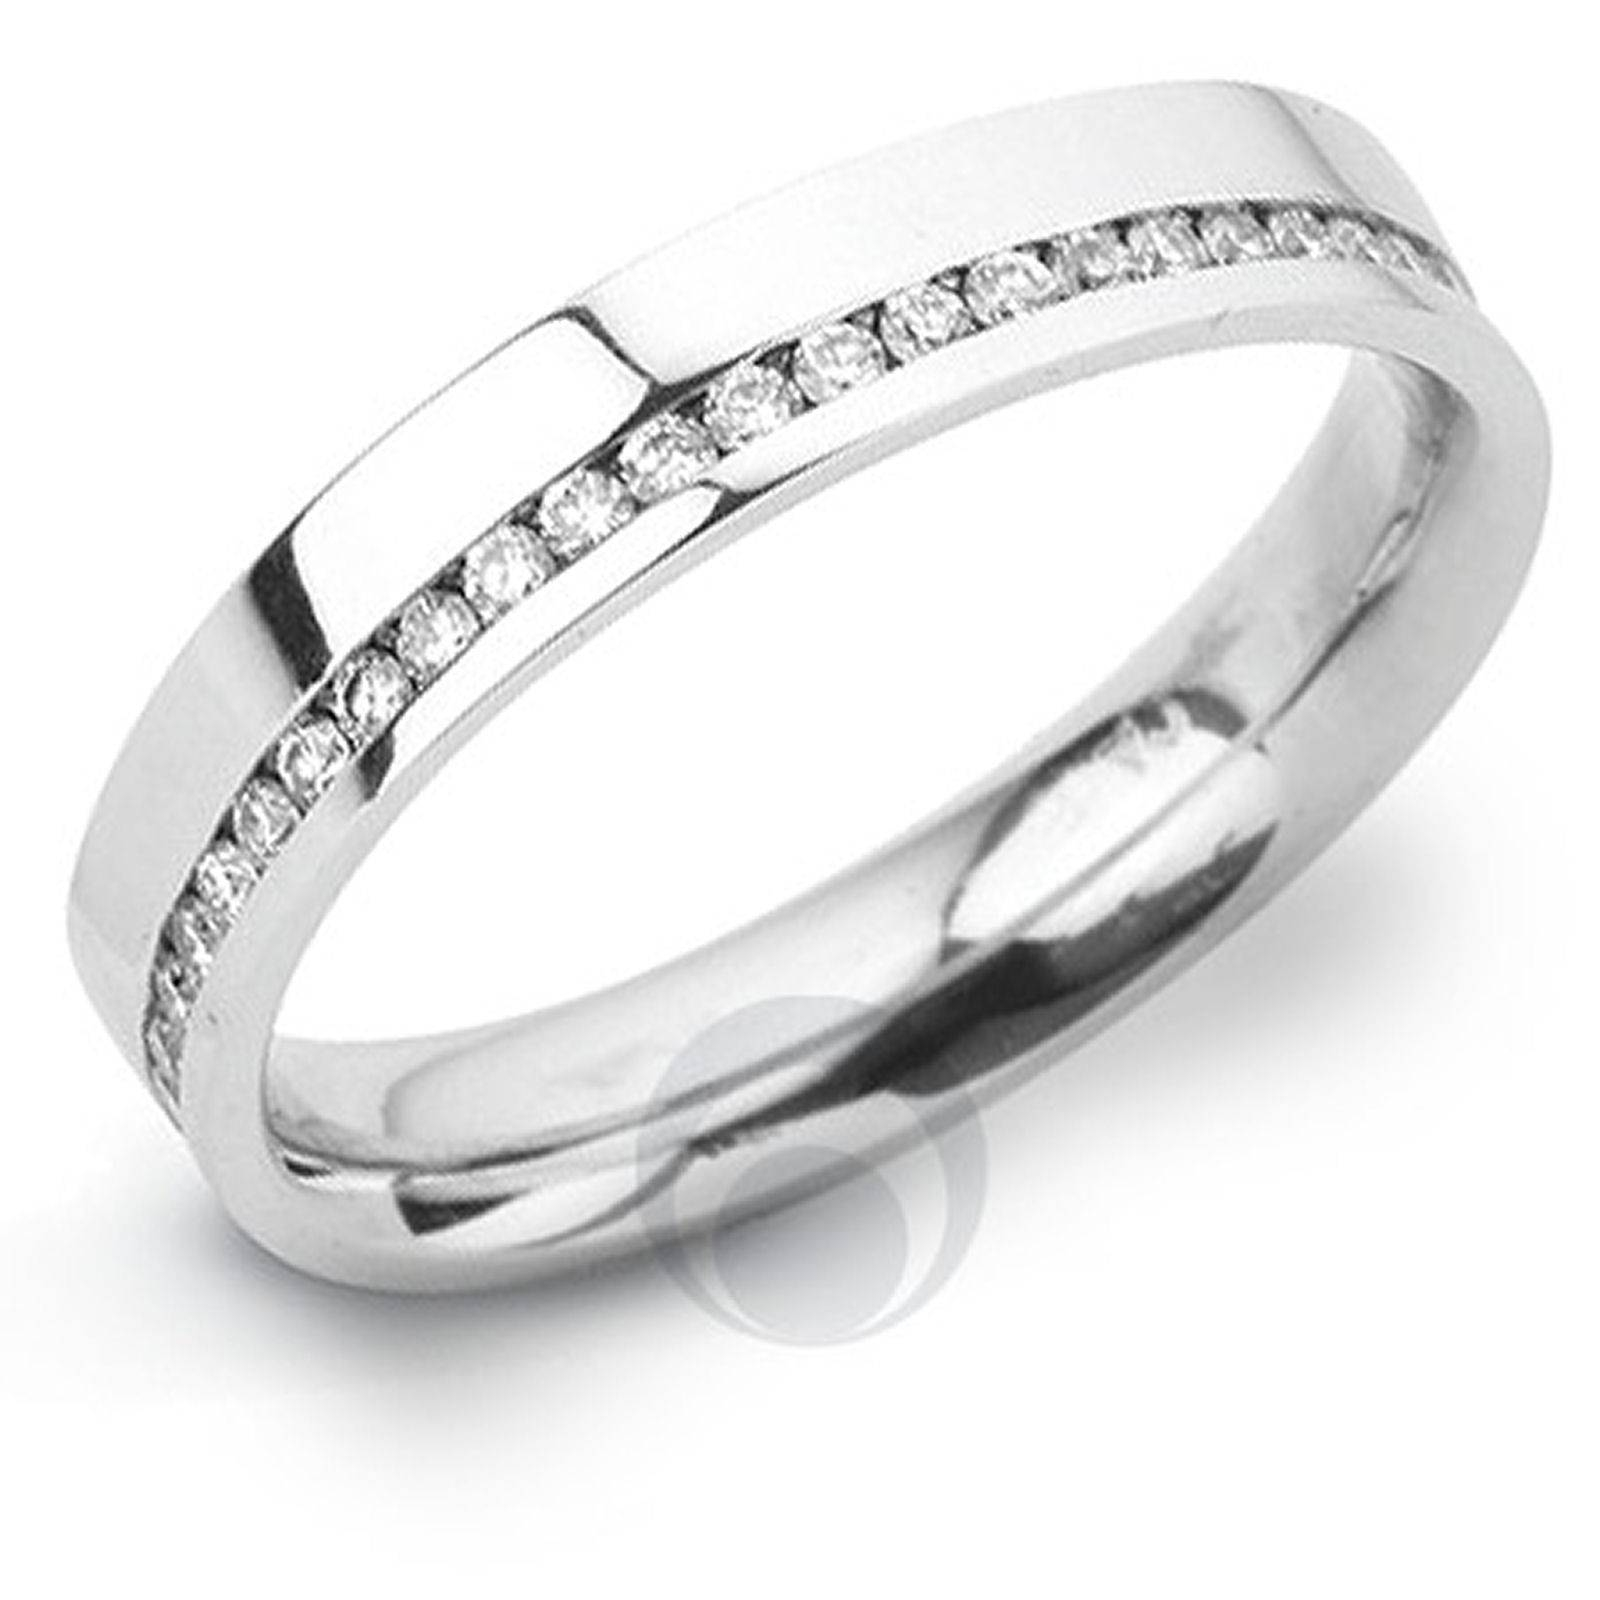 Channel Diamond Platinum Wedding Ring Wedding Dress From The Pertaining To 2018 Platinum Wedding Band With Diamonds (View 2 of 15)